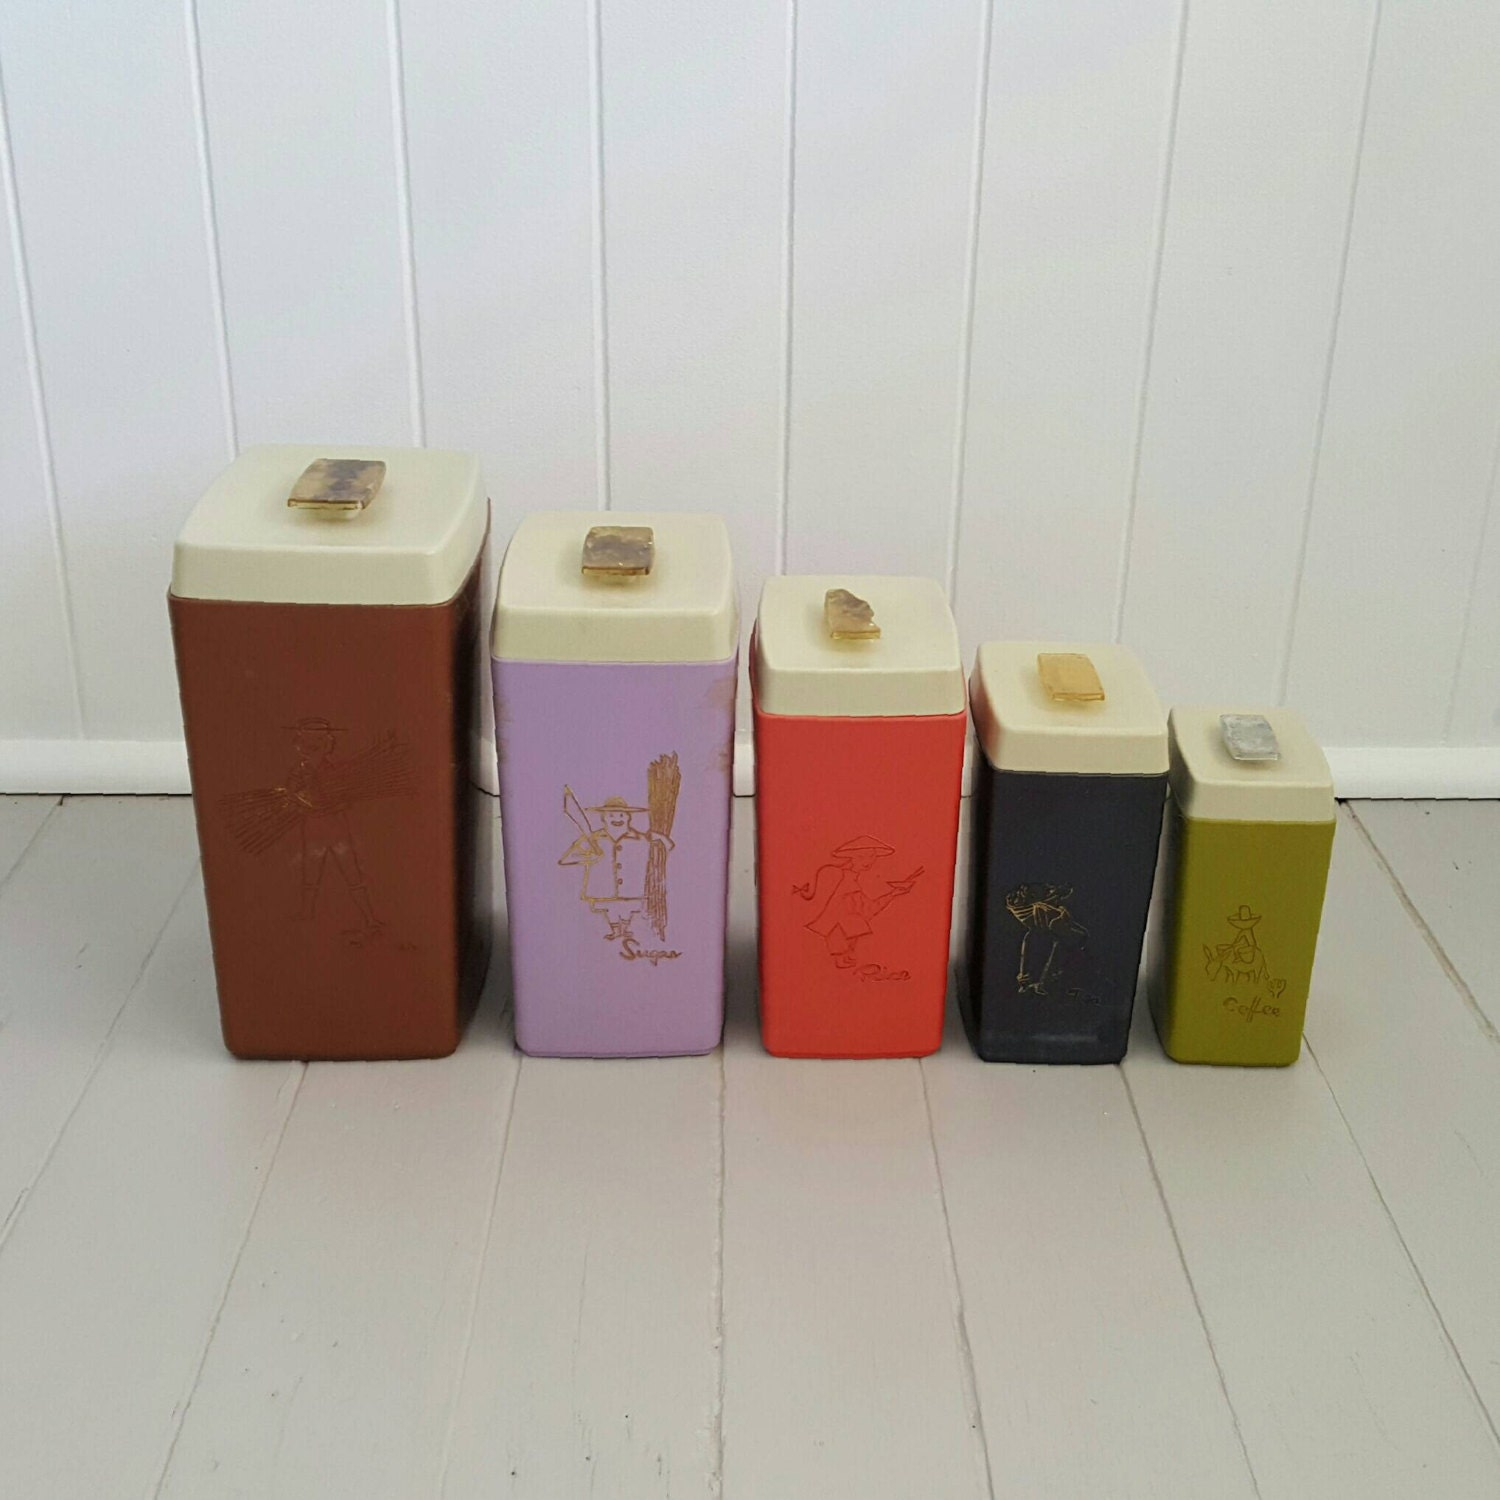 vintage kitchen canister set retro colours vintage kitchen canister set aluminum 1940s kitchen decor